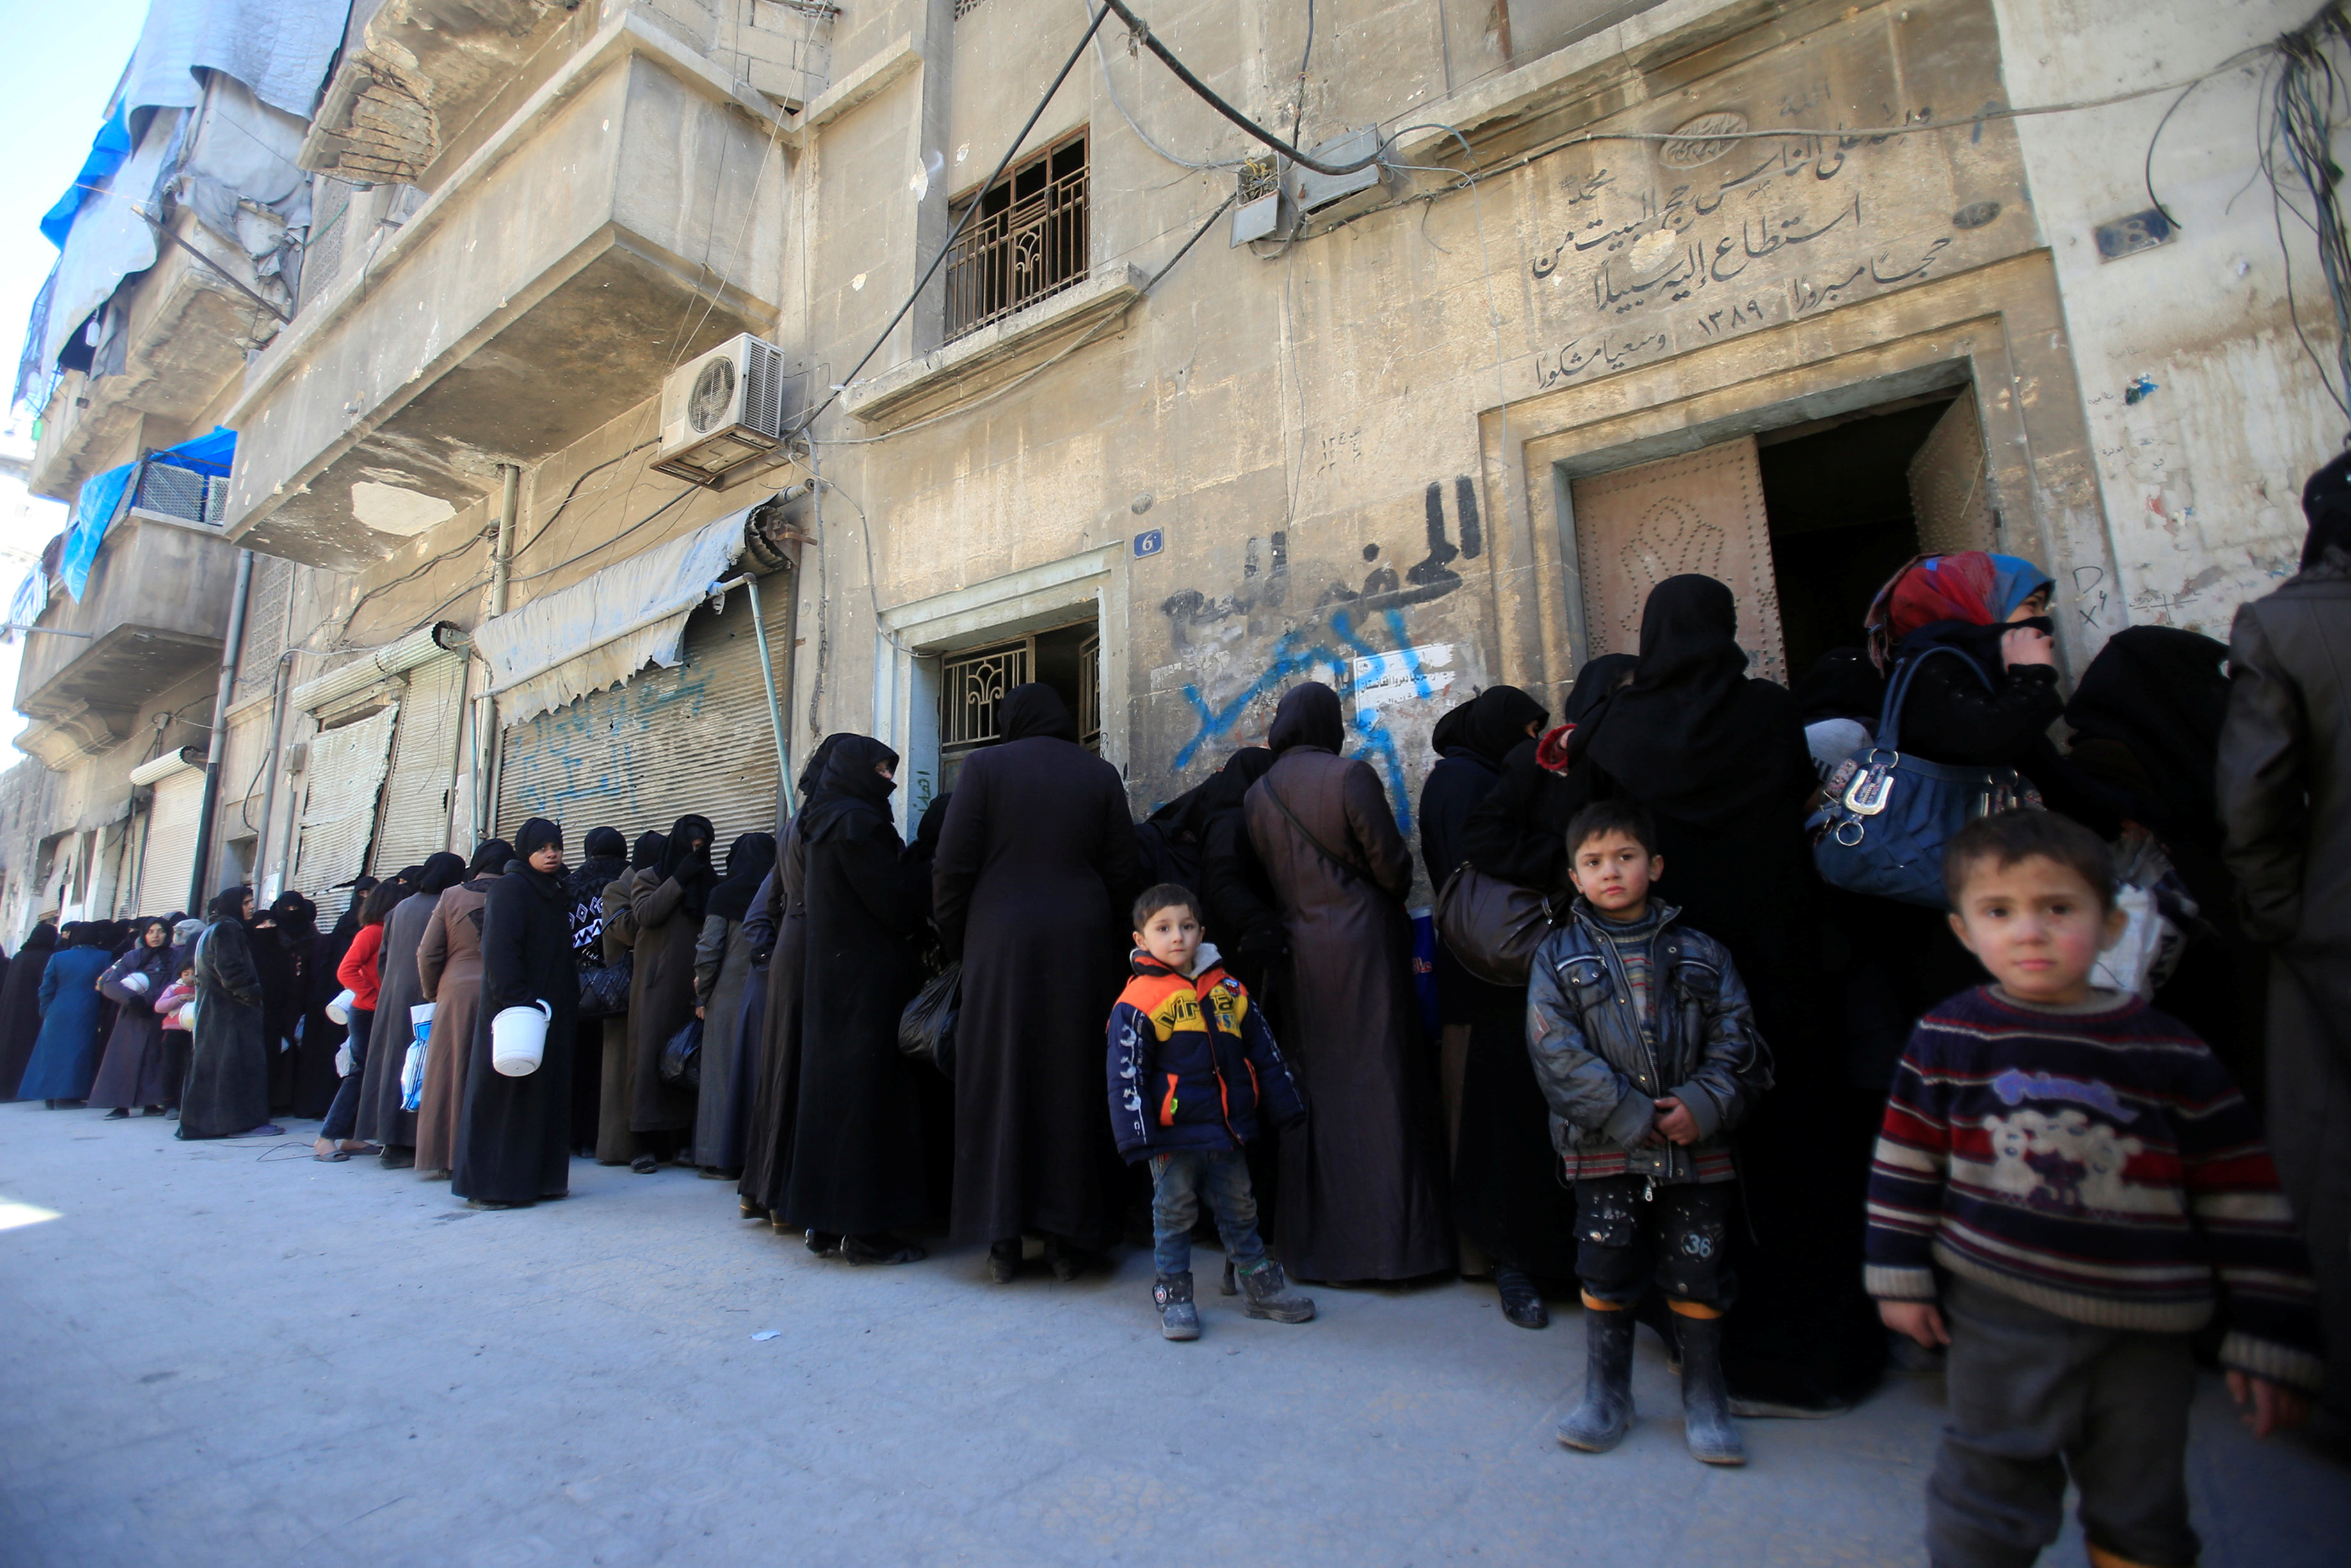 Women and children queue to receive free meals in Aleppo, Syria February 2, 2017. REUTERS/Ali Hashisho - RTX2ZEBF